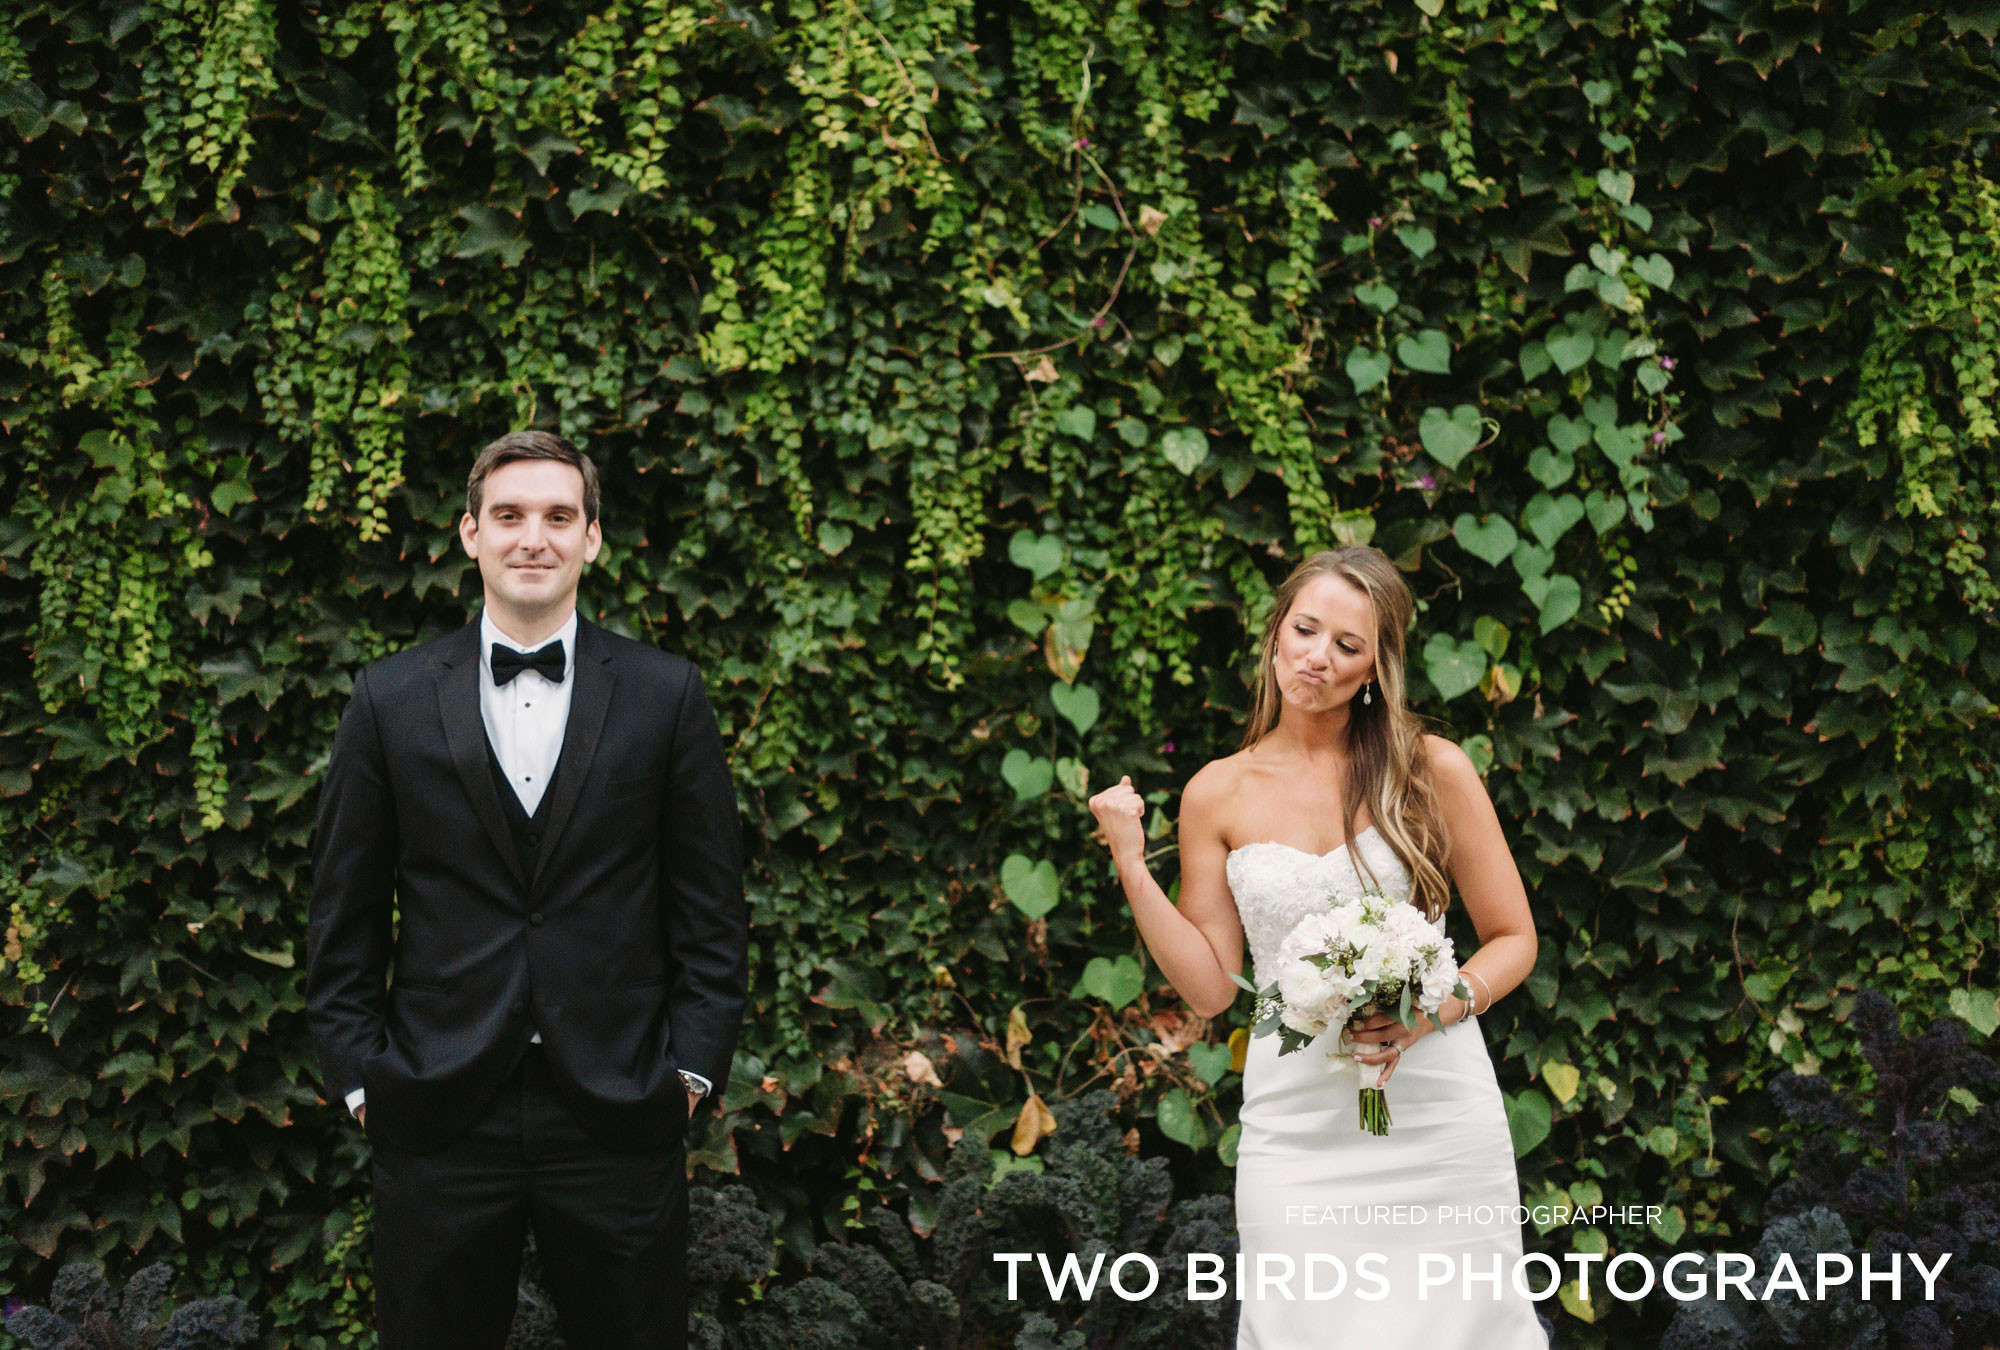 Two Birds Photography - Featured Photographer